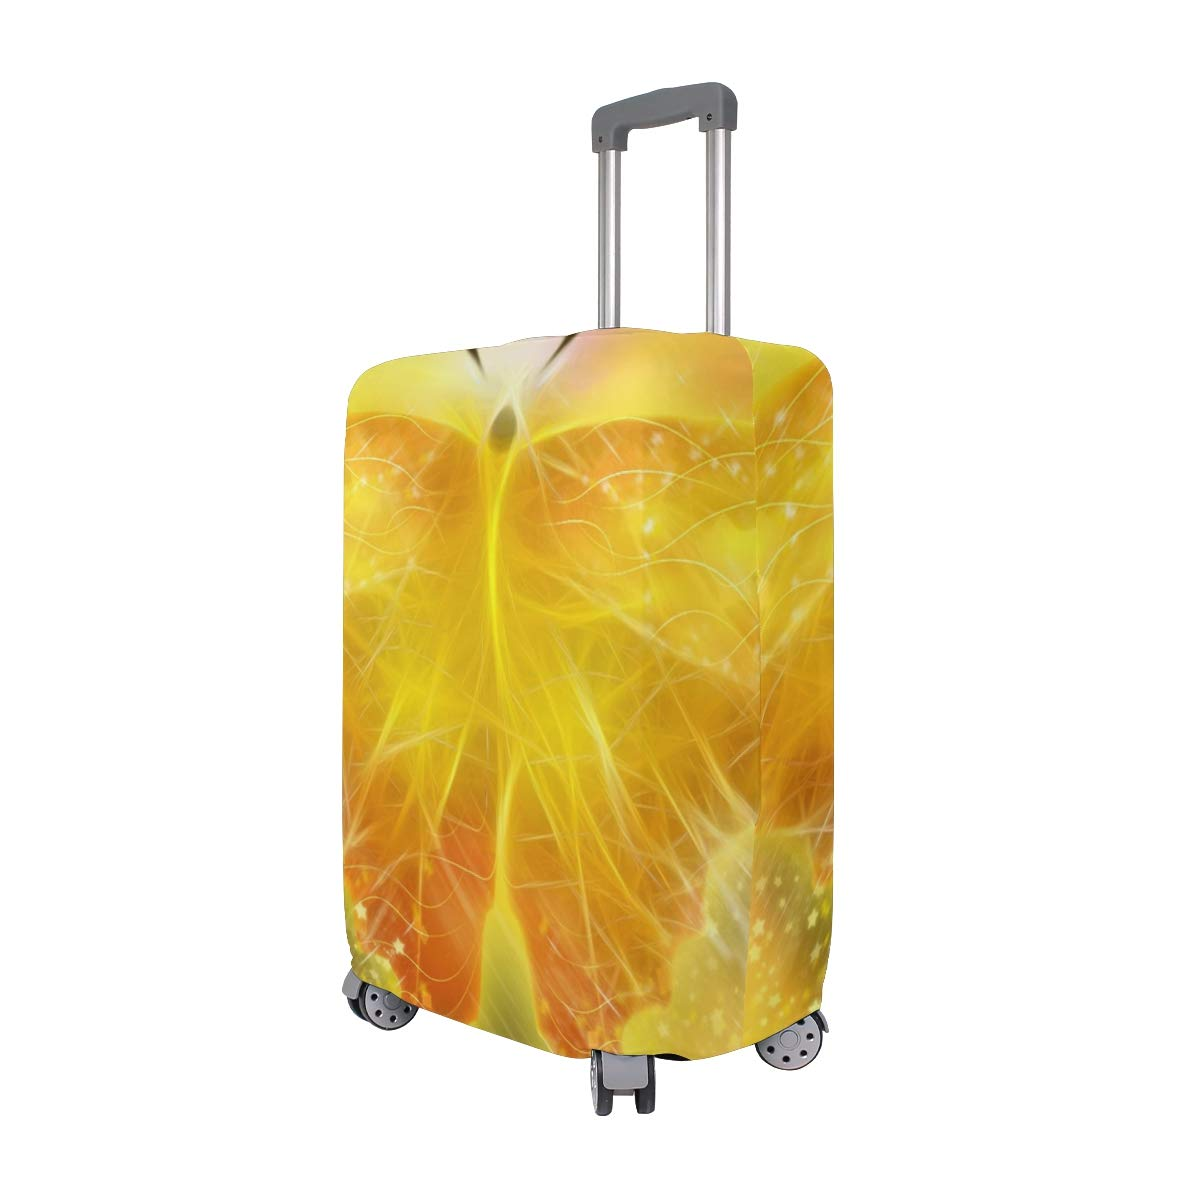 Beautiful Golden Light Butterfly suitcase cover elastic suitcase cover zipper luggage case removable cleaning suitable for 29-32 trunk cover